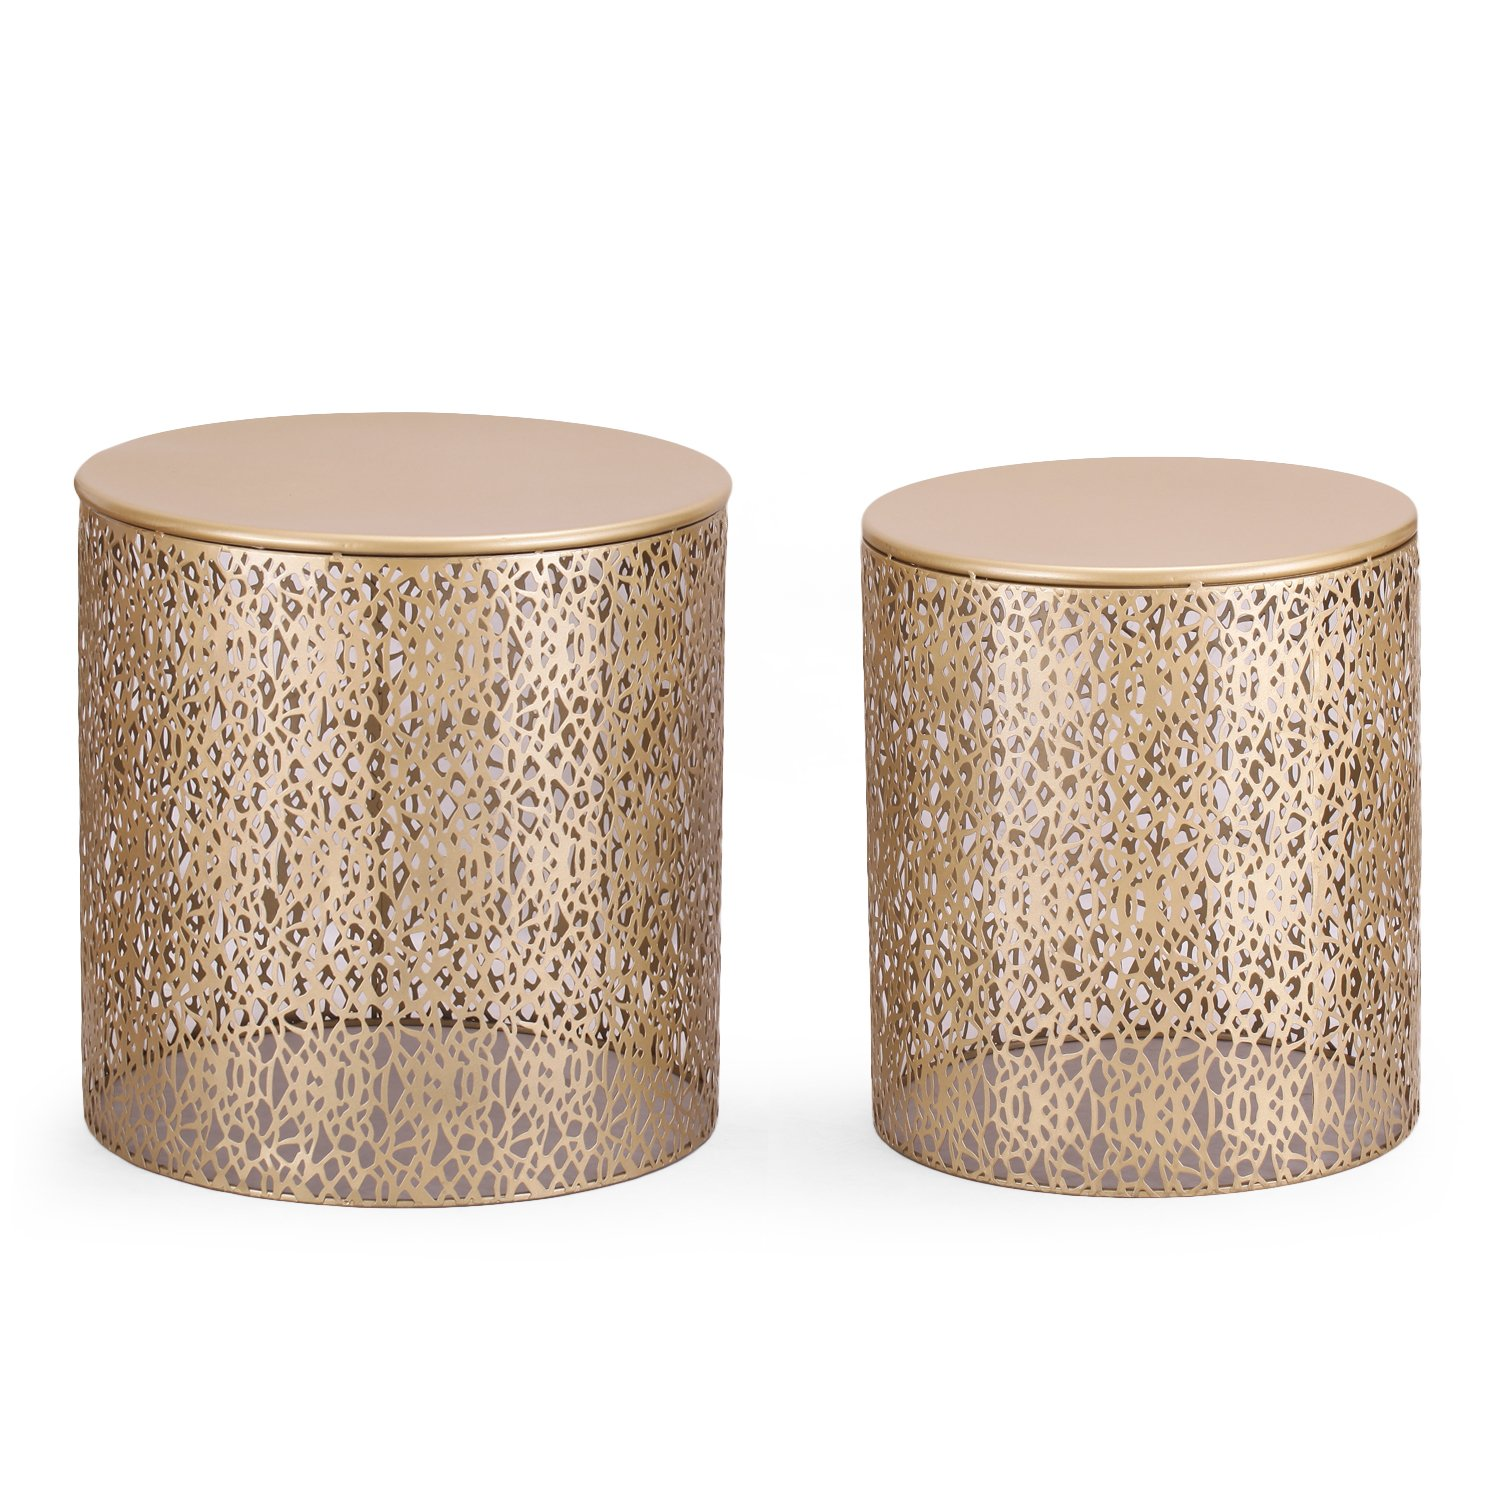 Adeco Luxury Modern Golden Accent Metal Coffee Nesting Round Side End Table, Set of 2 by Adeco